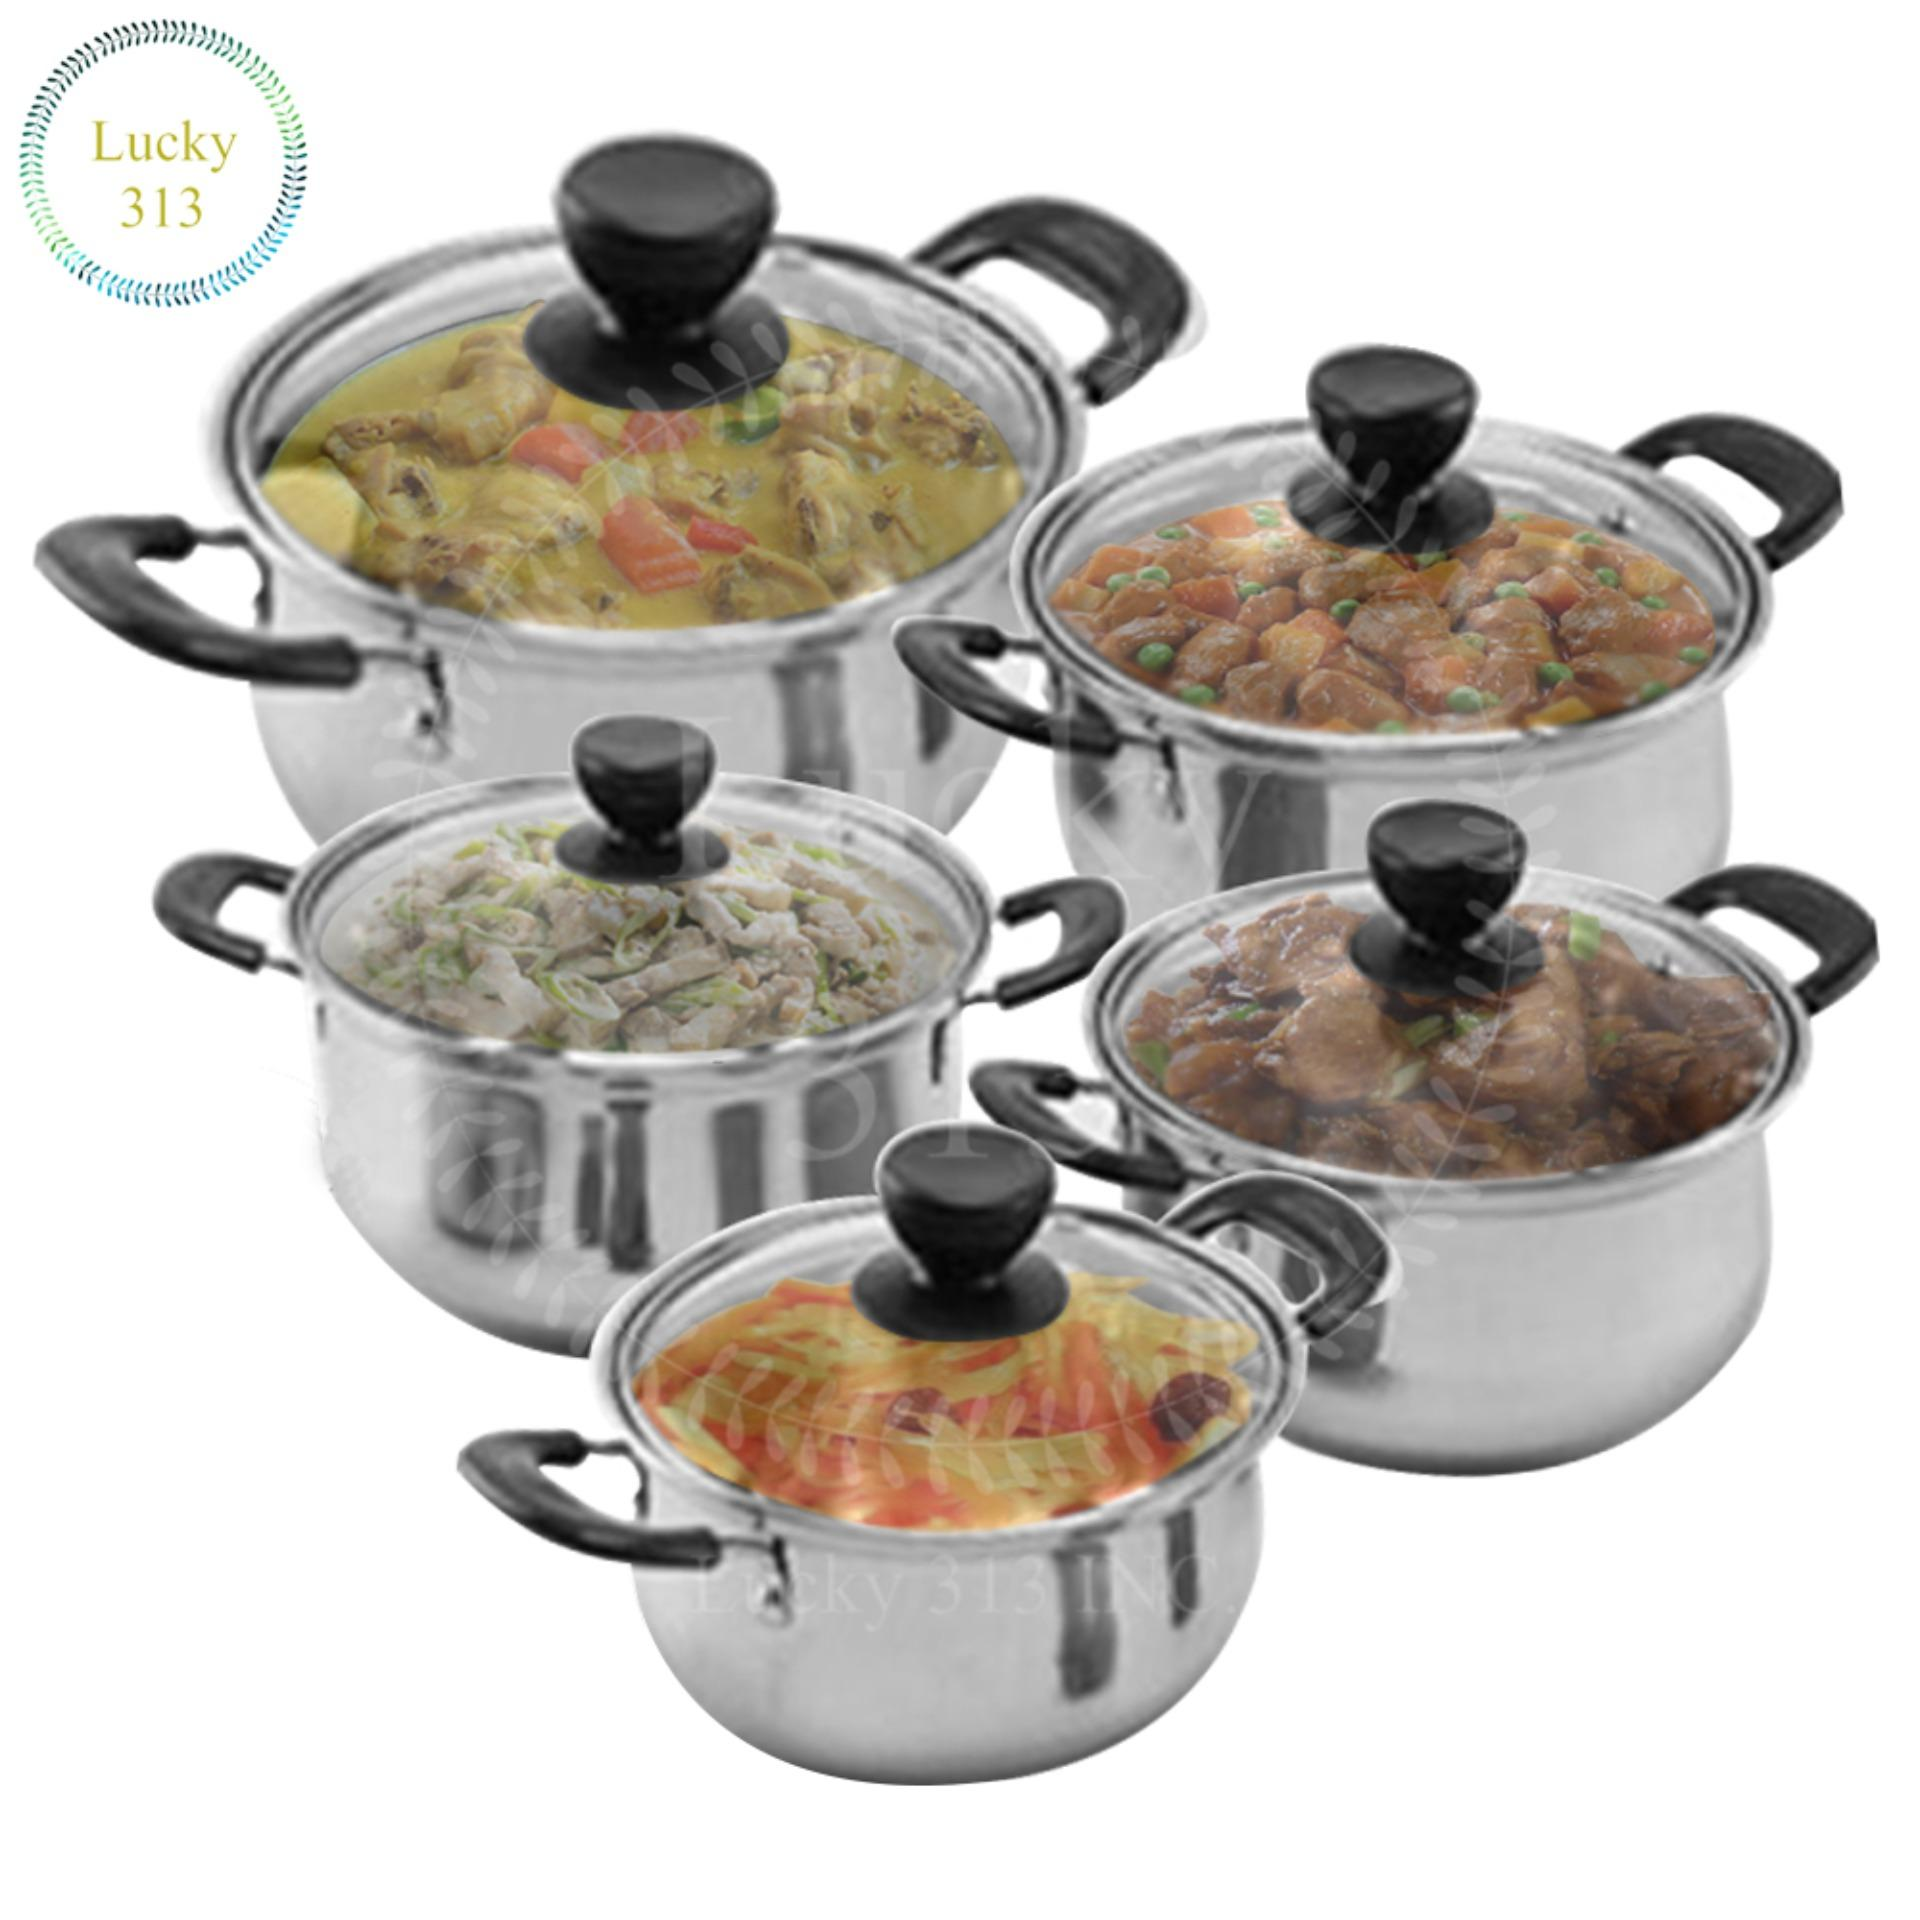 Cookware For Sale Cooking Ware Products Prices Brands